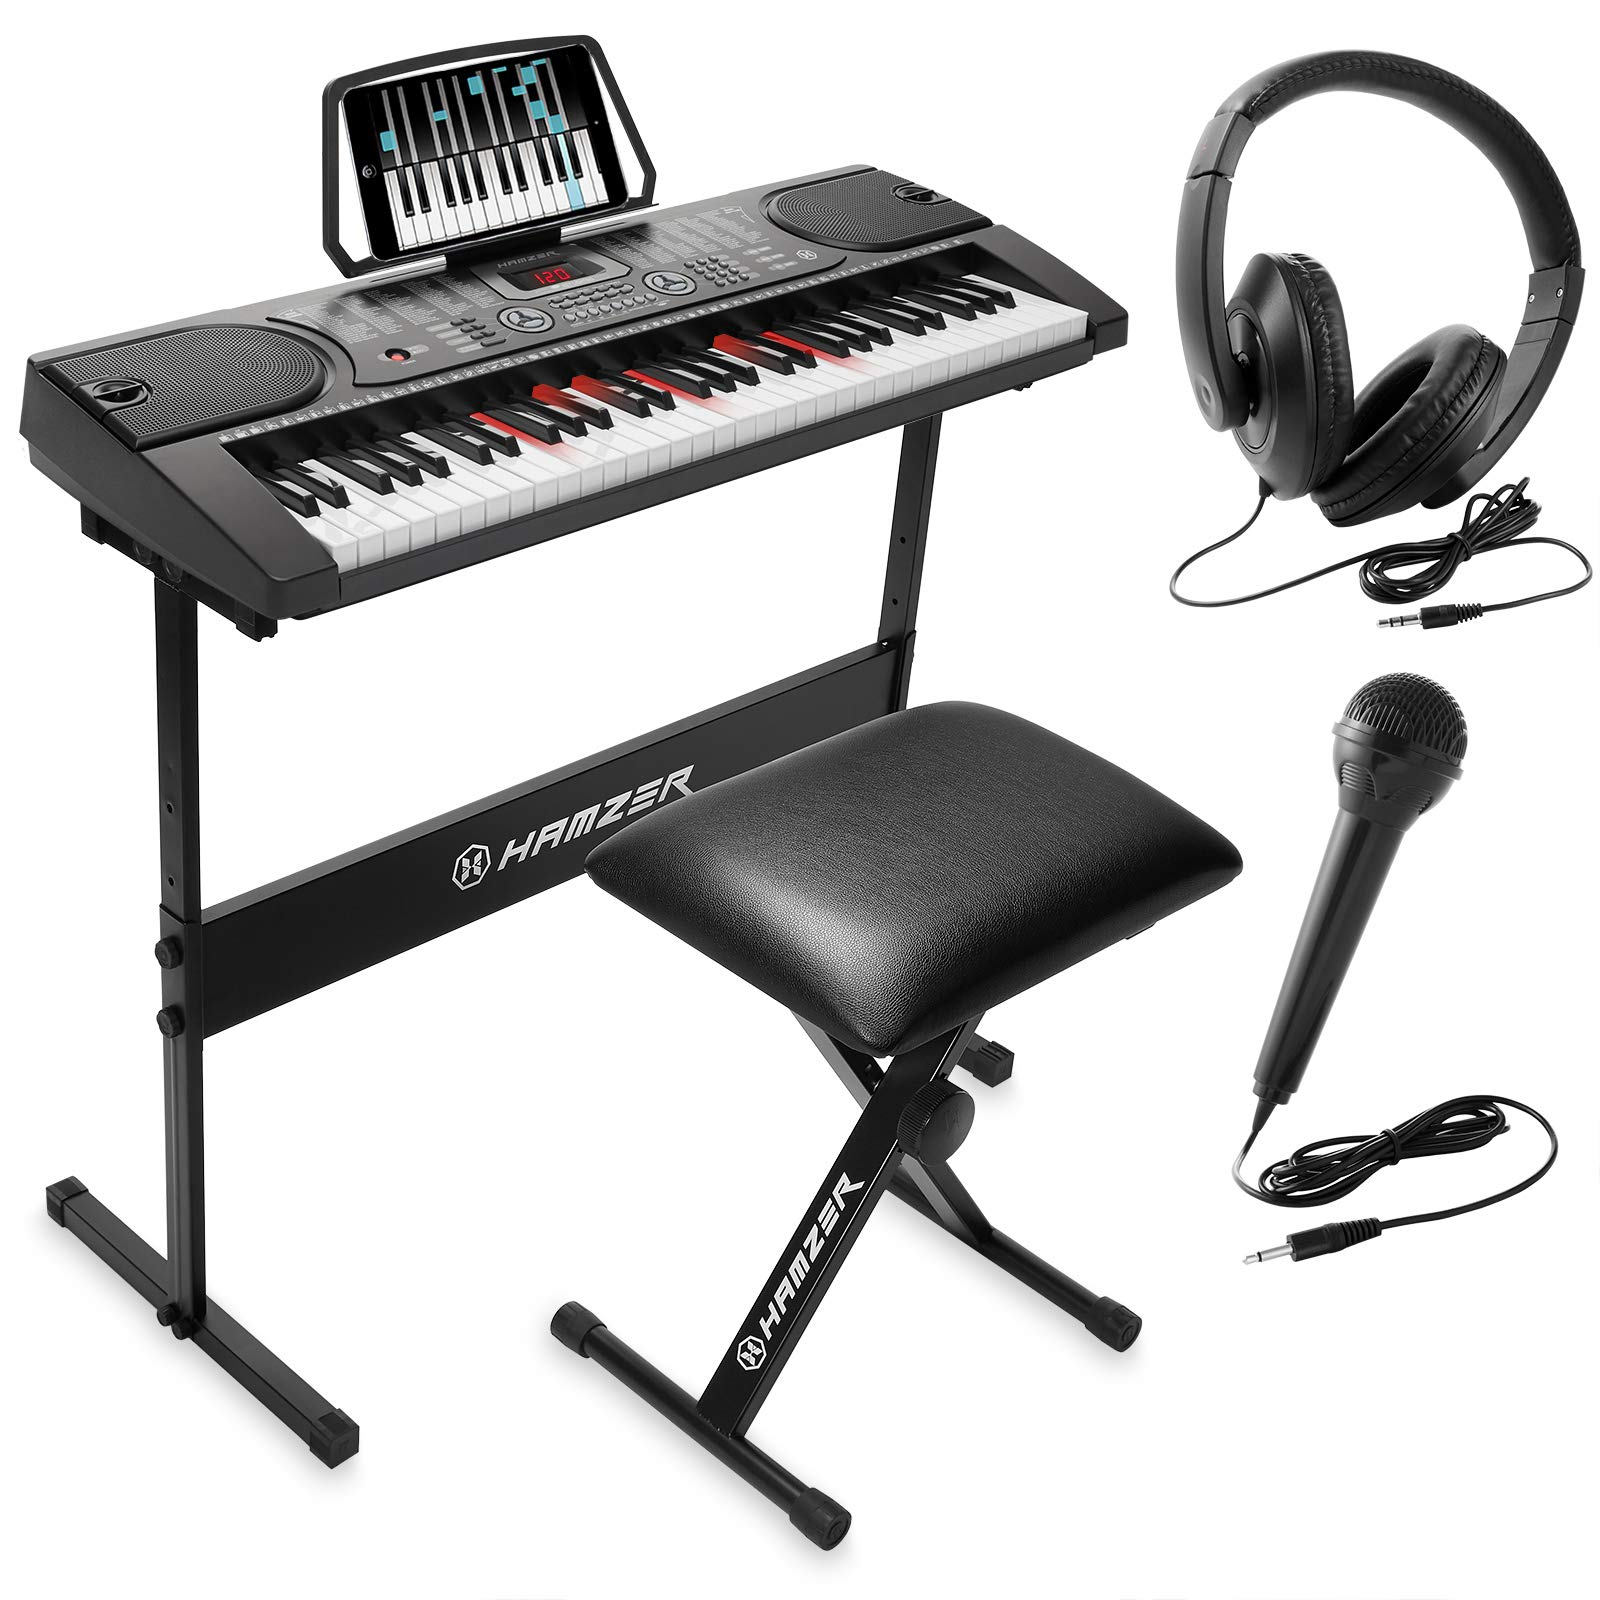 Hamzer 61-Key Electronic Keyboard Portable Digital Music Piano with Lighted Keys, H Stand, Stool, Headphones Microphone, Sticker Set by Hamzer